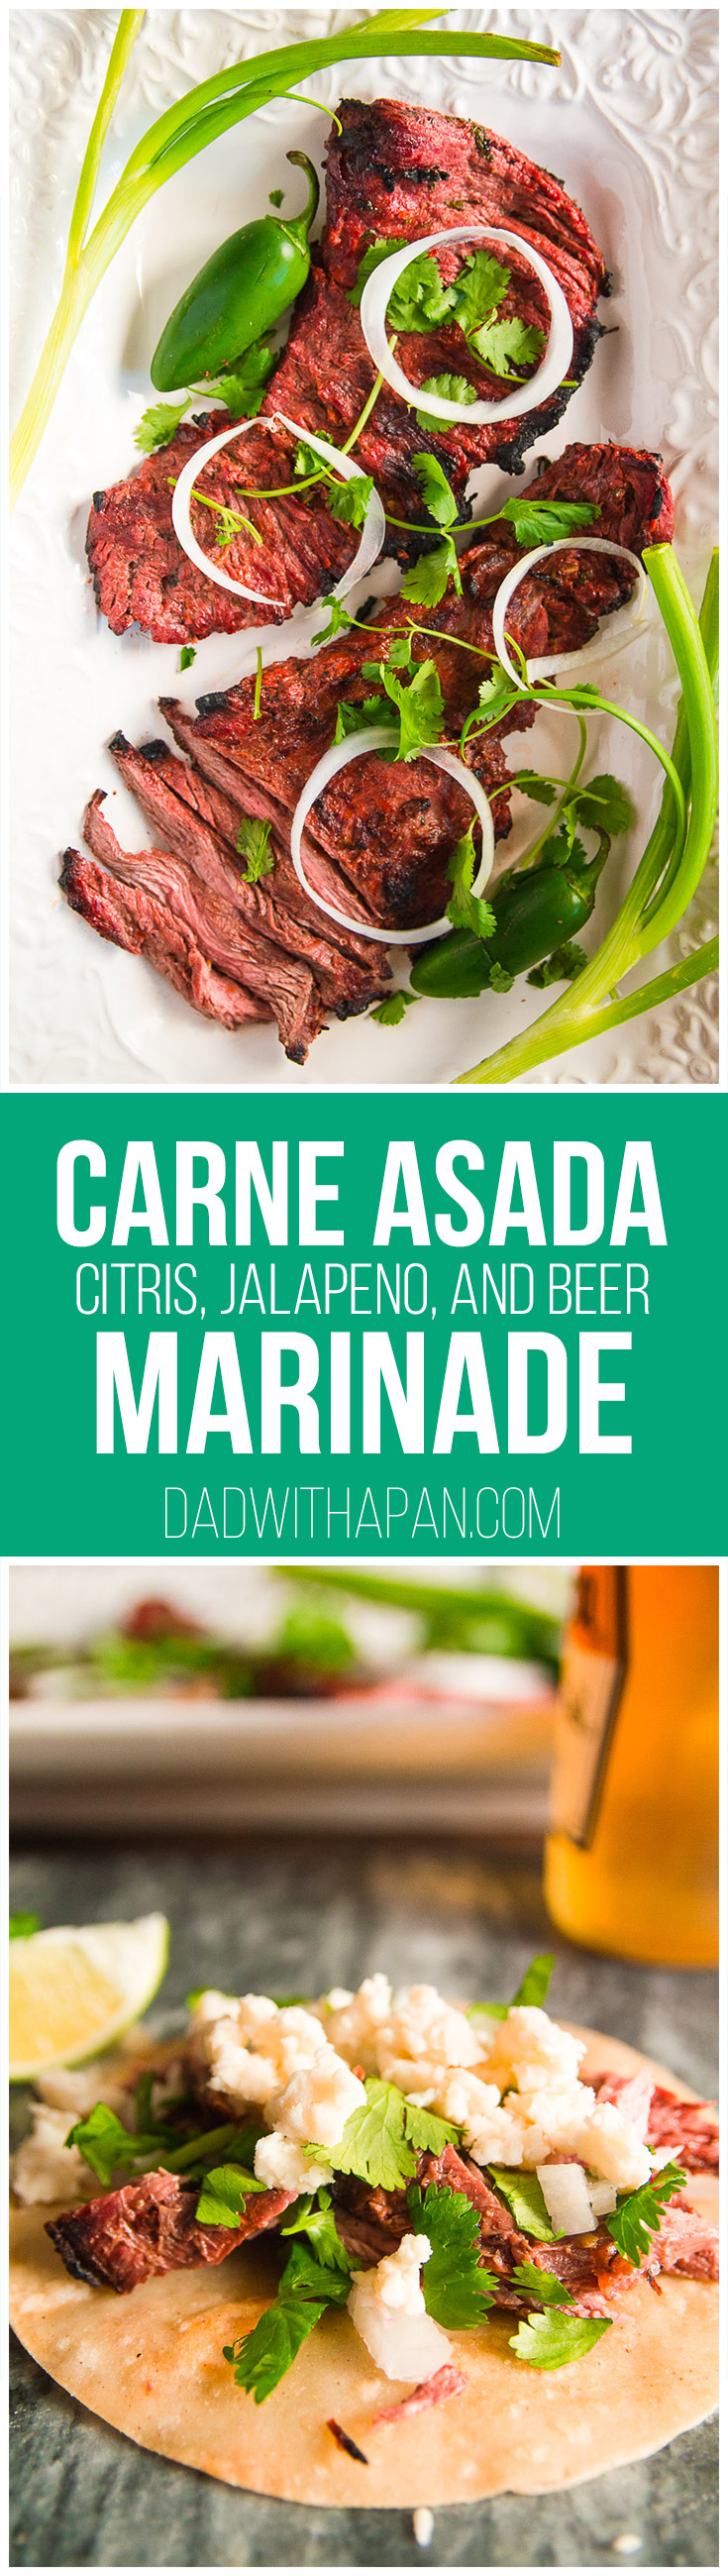 Carne Asada Beer Marinade Recipe